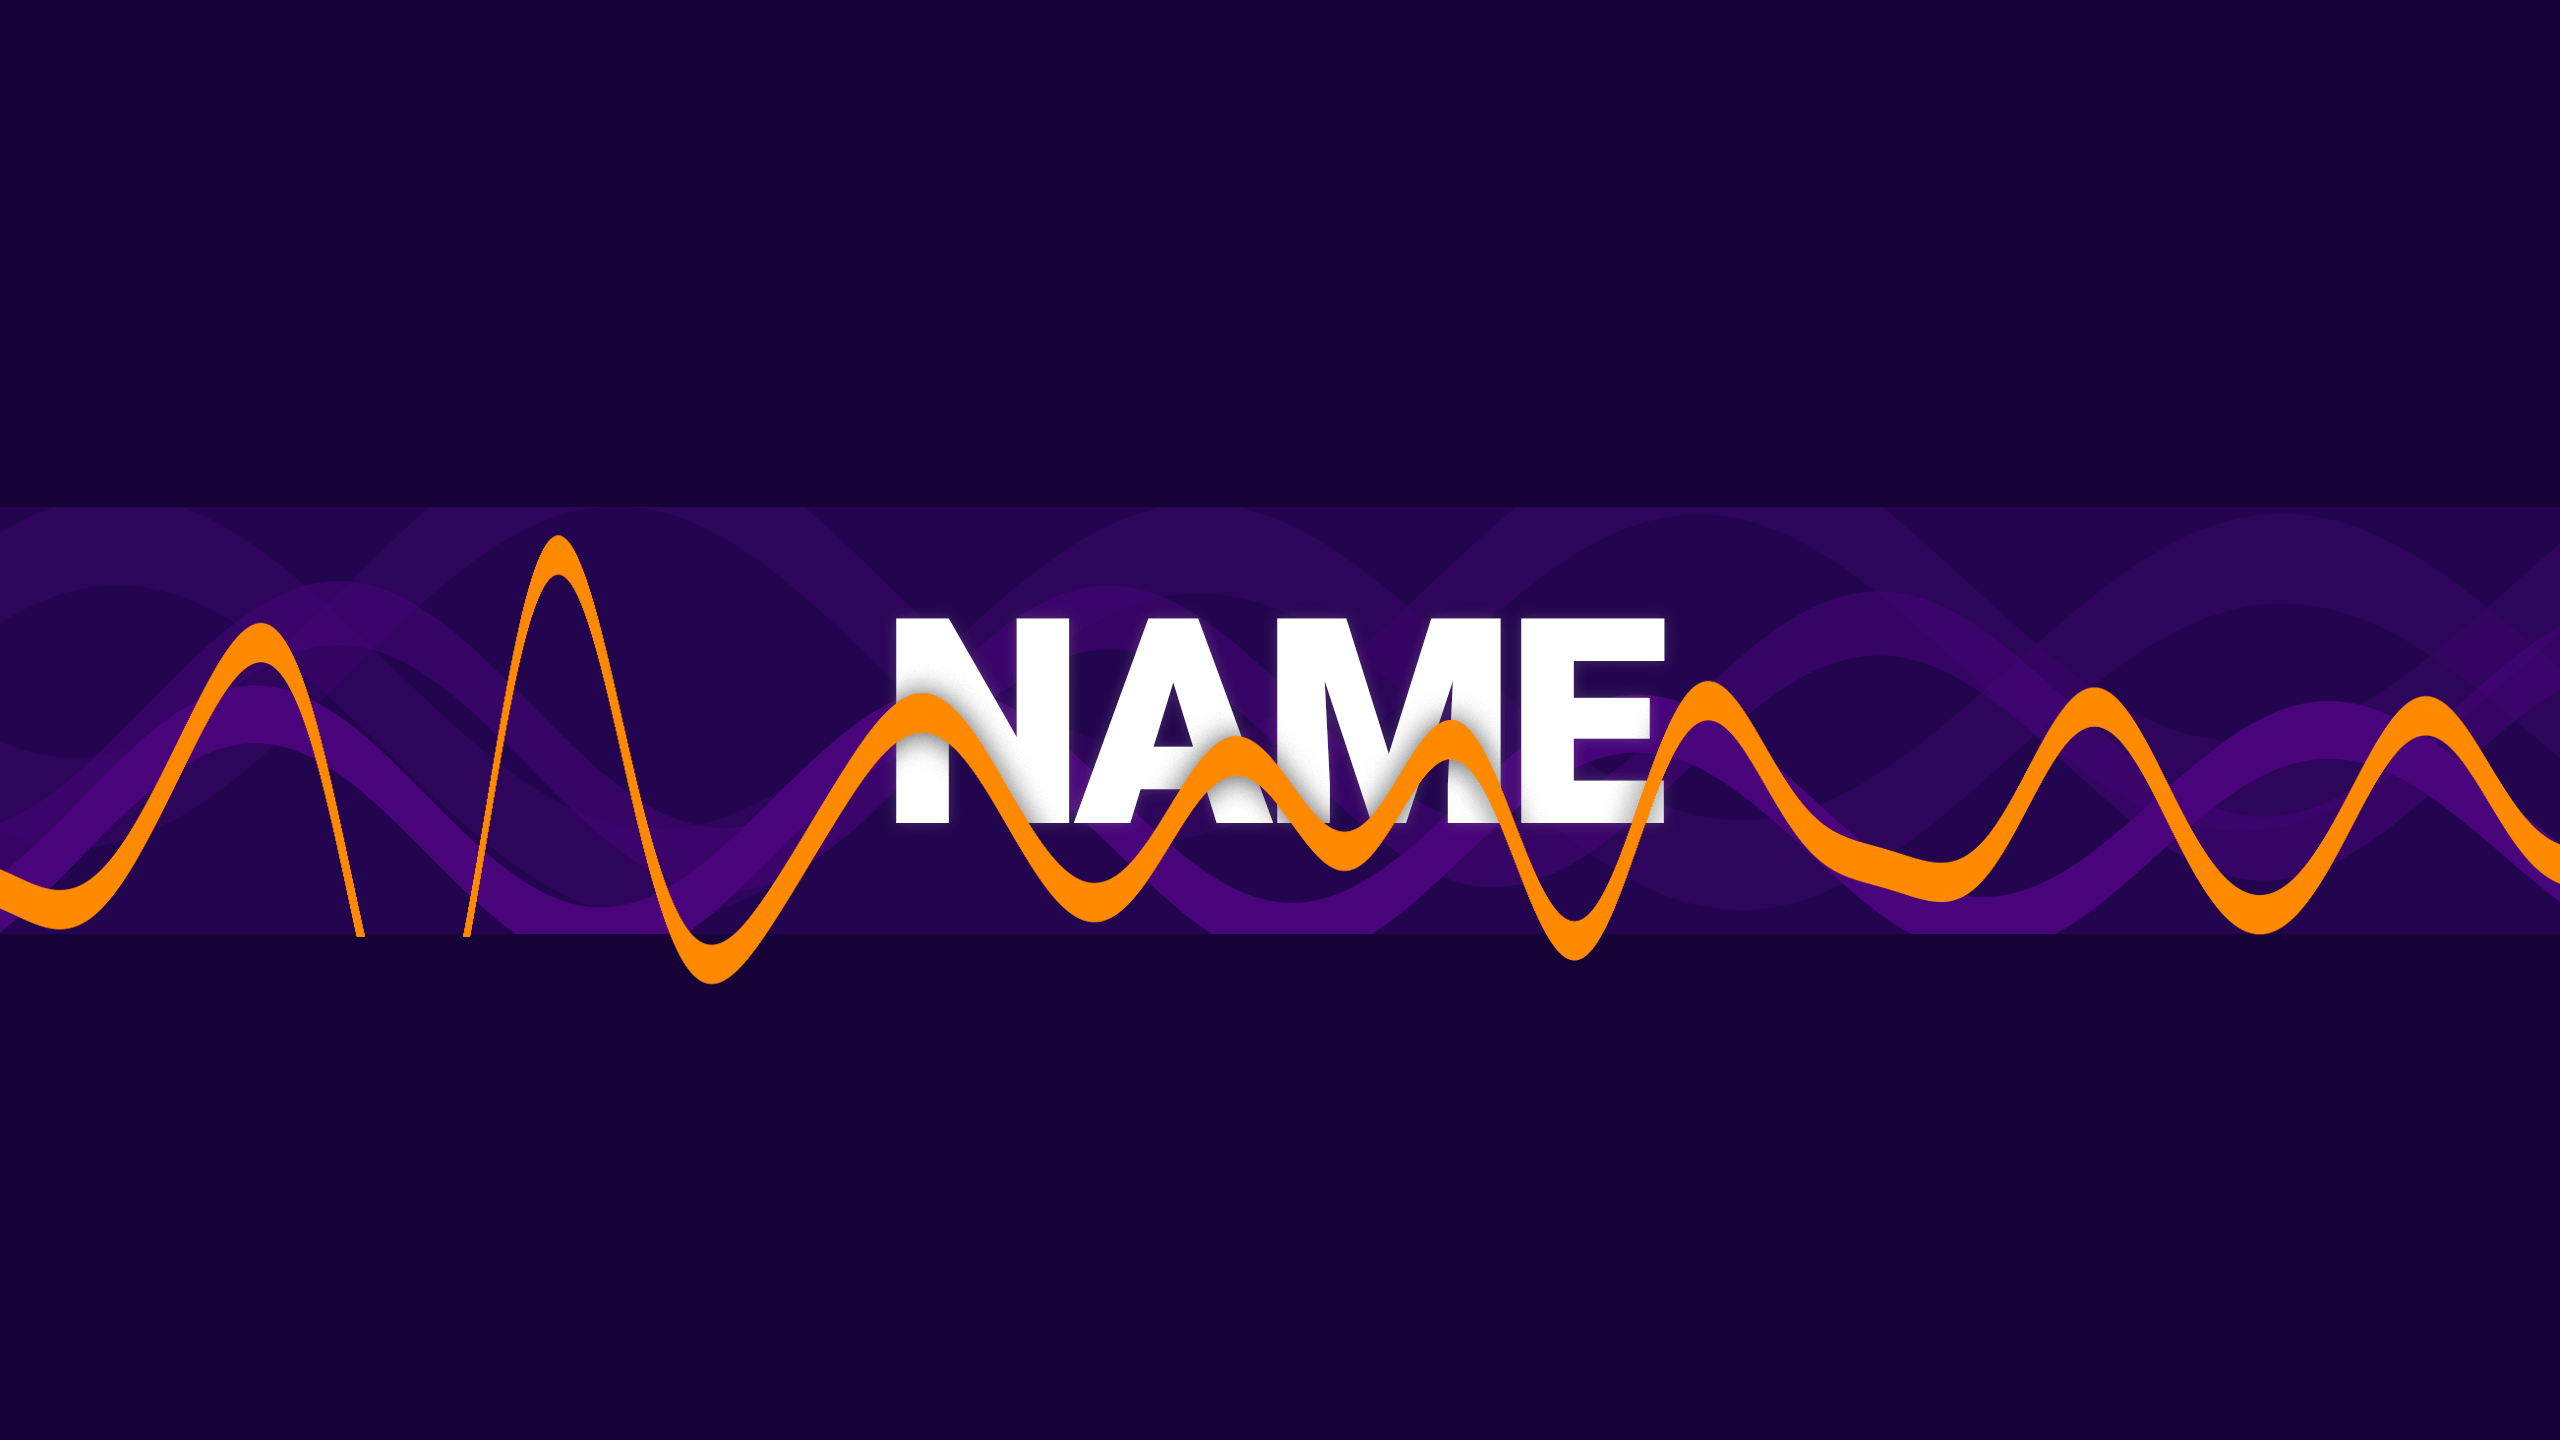 Waves Banner